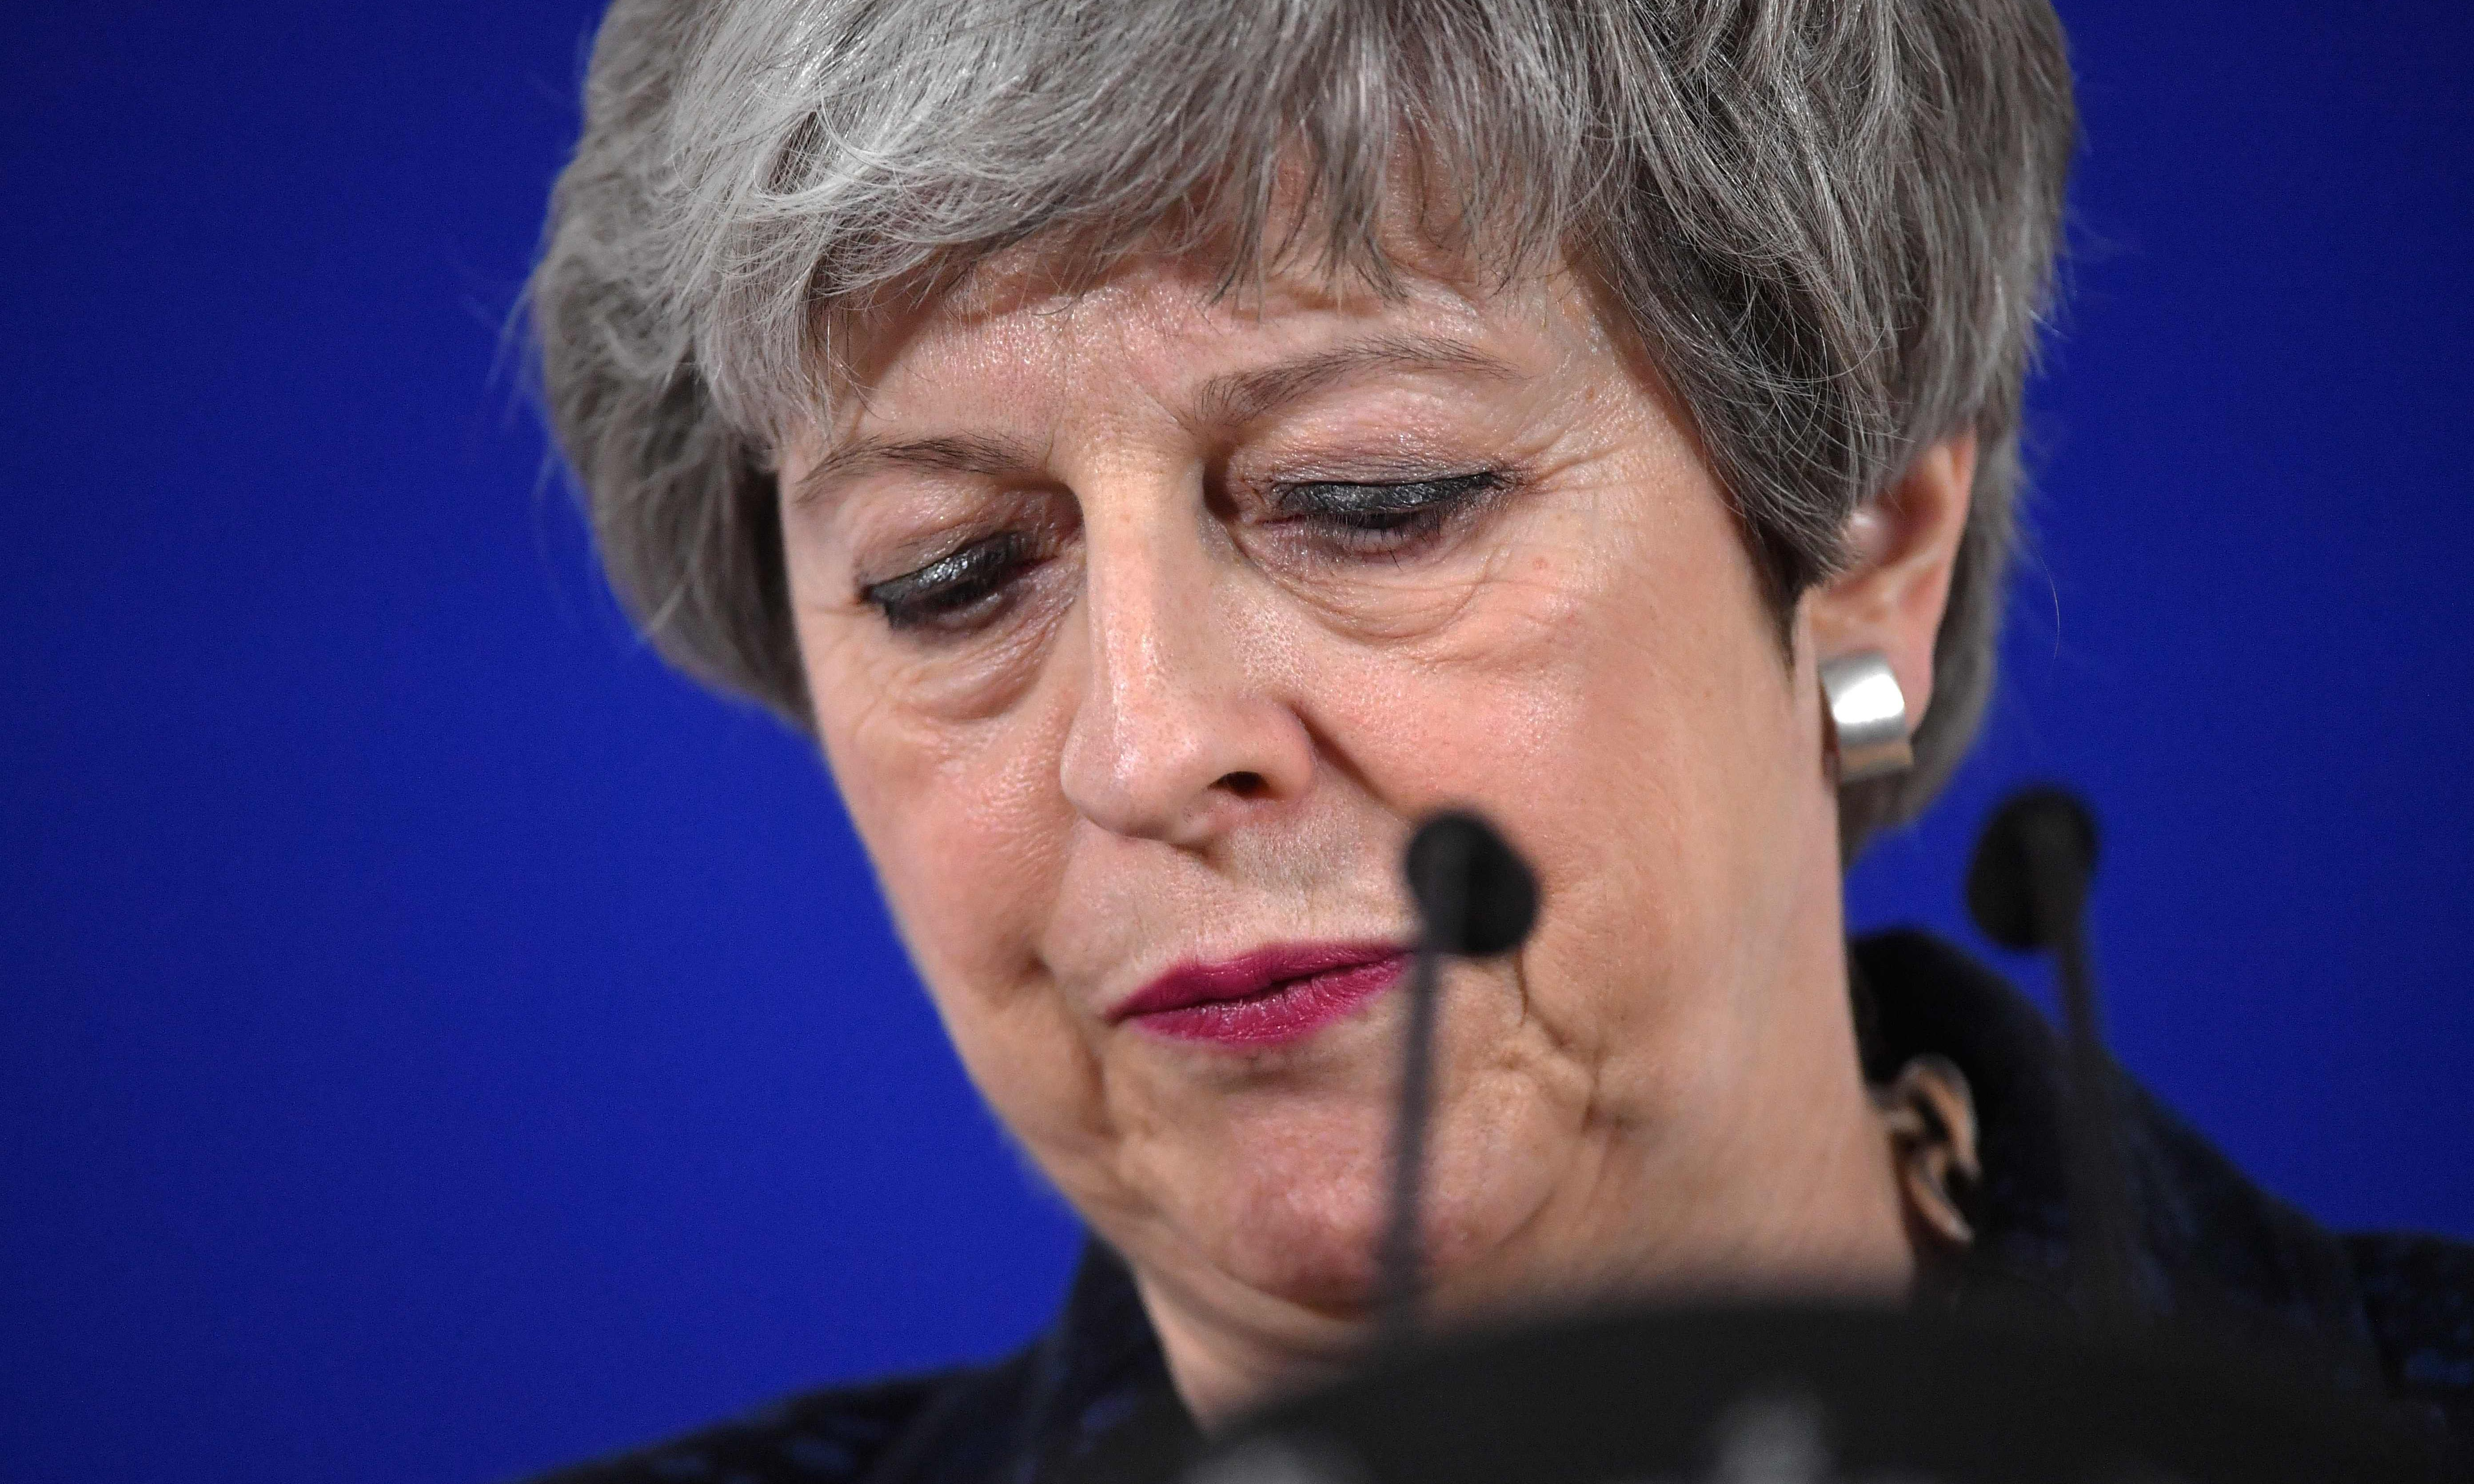 May's time is up. She must make way for a caretaker prime minister